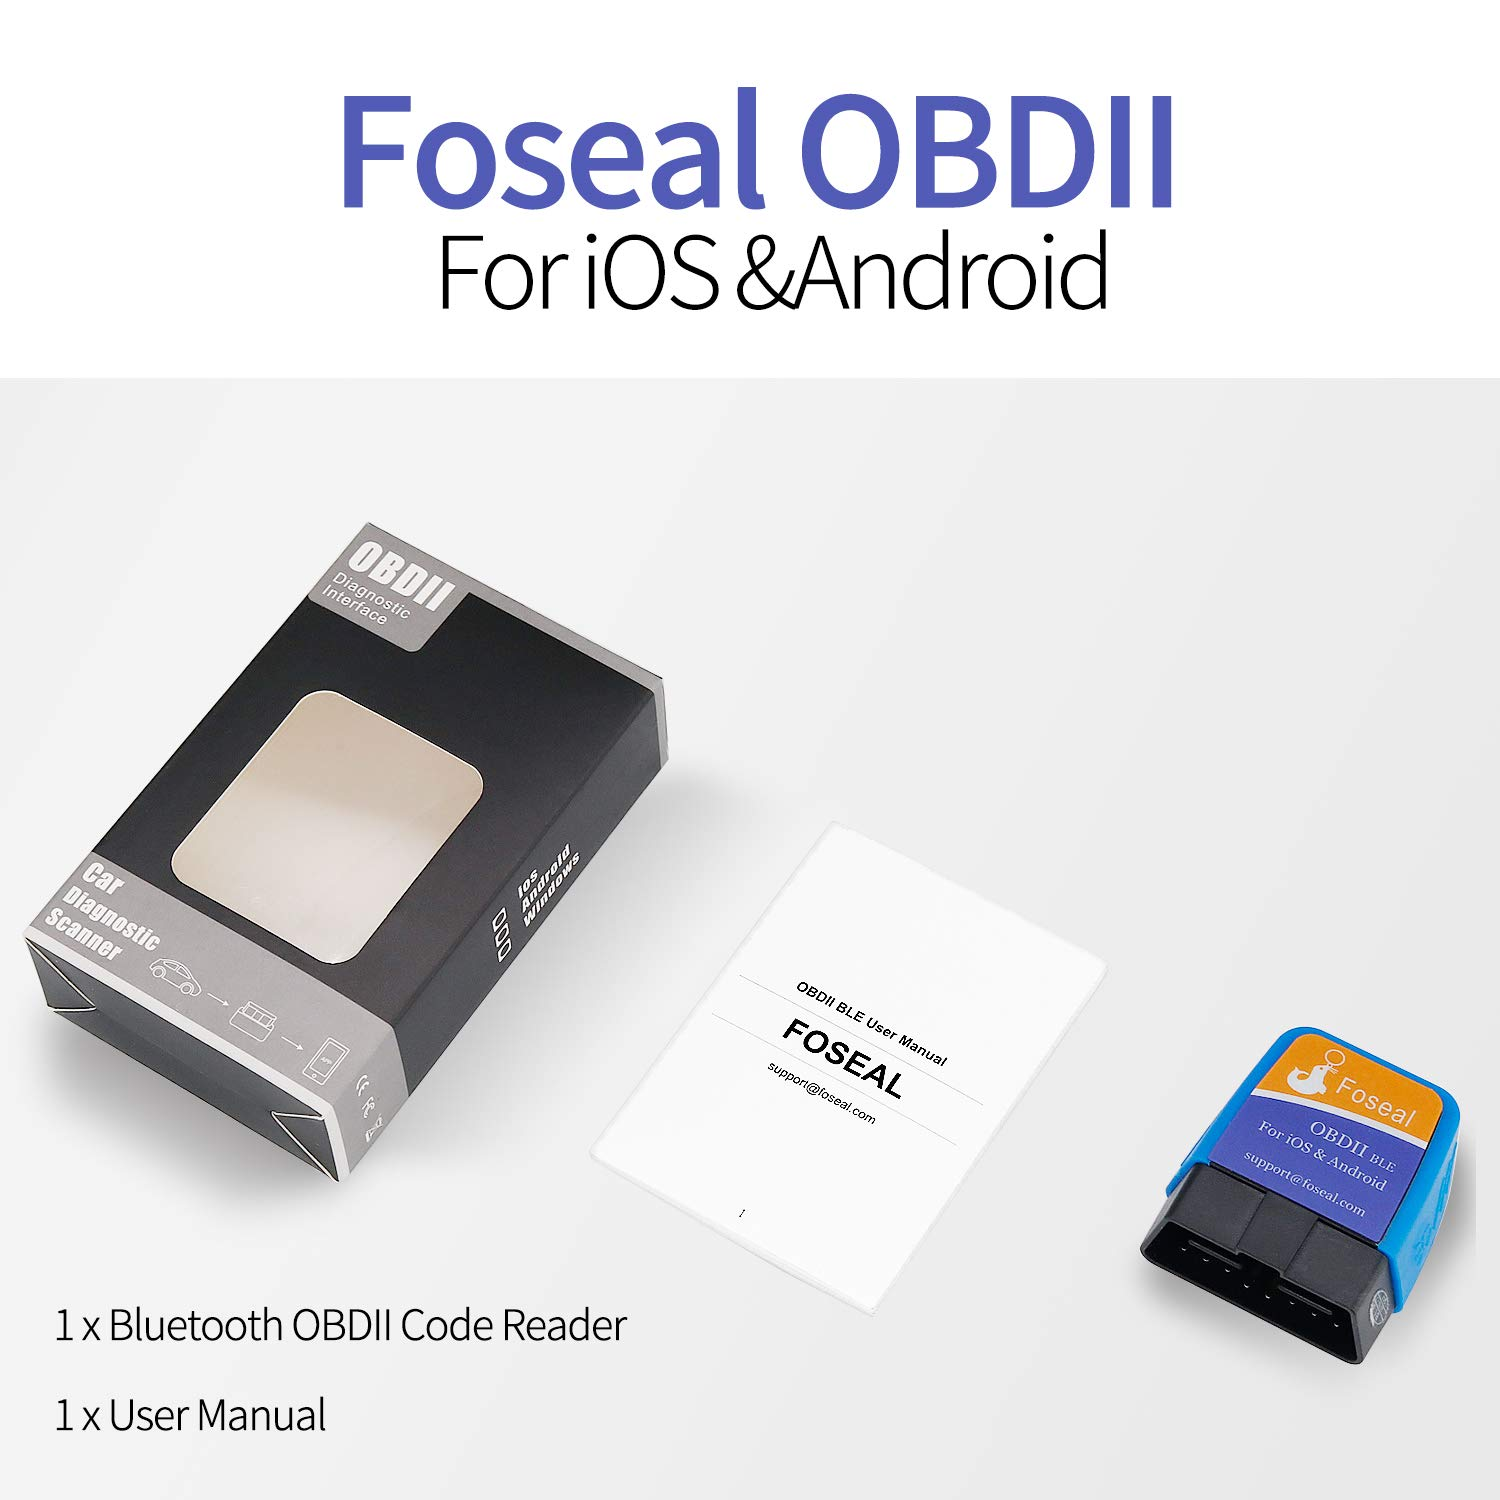 OBD2 Scanner Bluetooth 4 0 OBDII Scan Tool for Android Device & iOS (No  Need to Pair on iPhone/iPad), Foseal Car Diagnostic OBD 2 Check Engine  Light